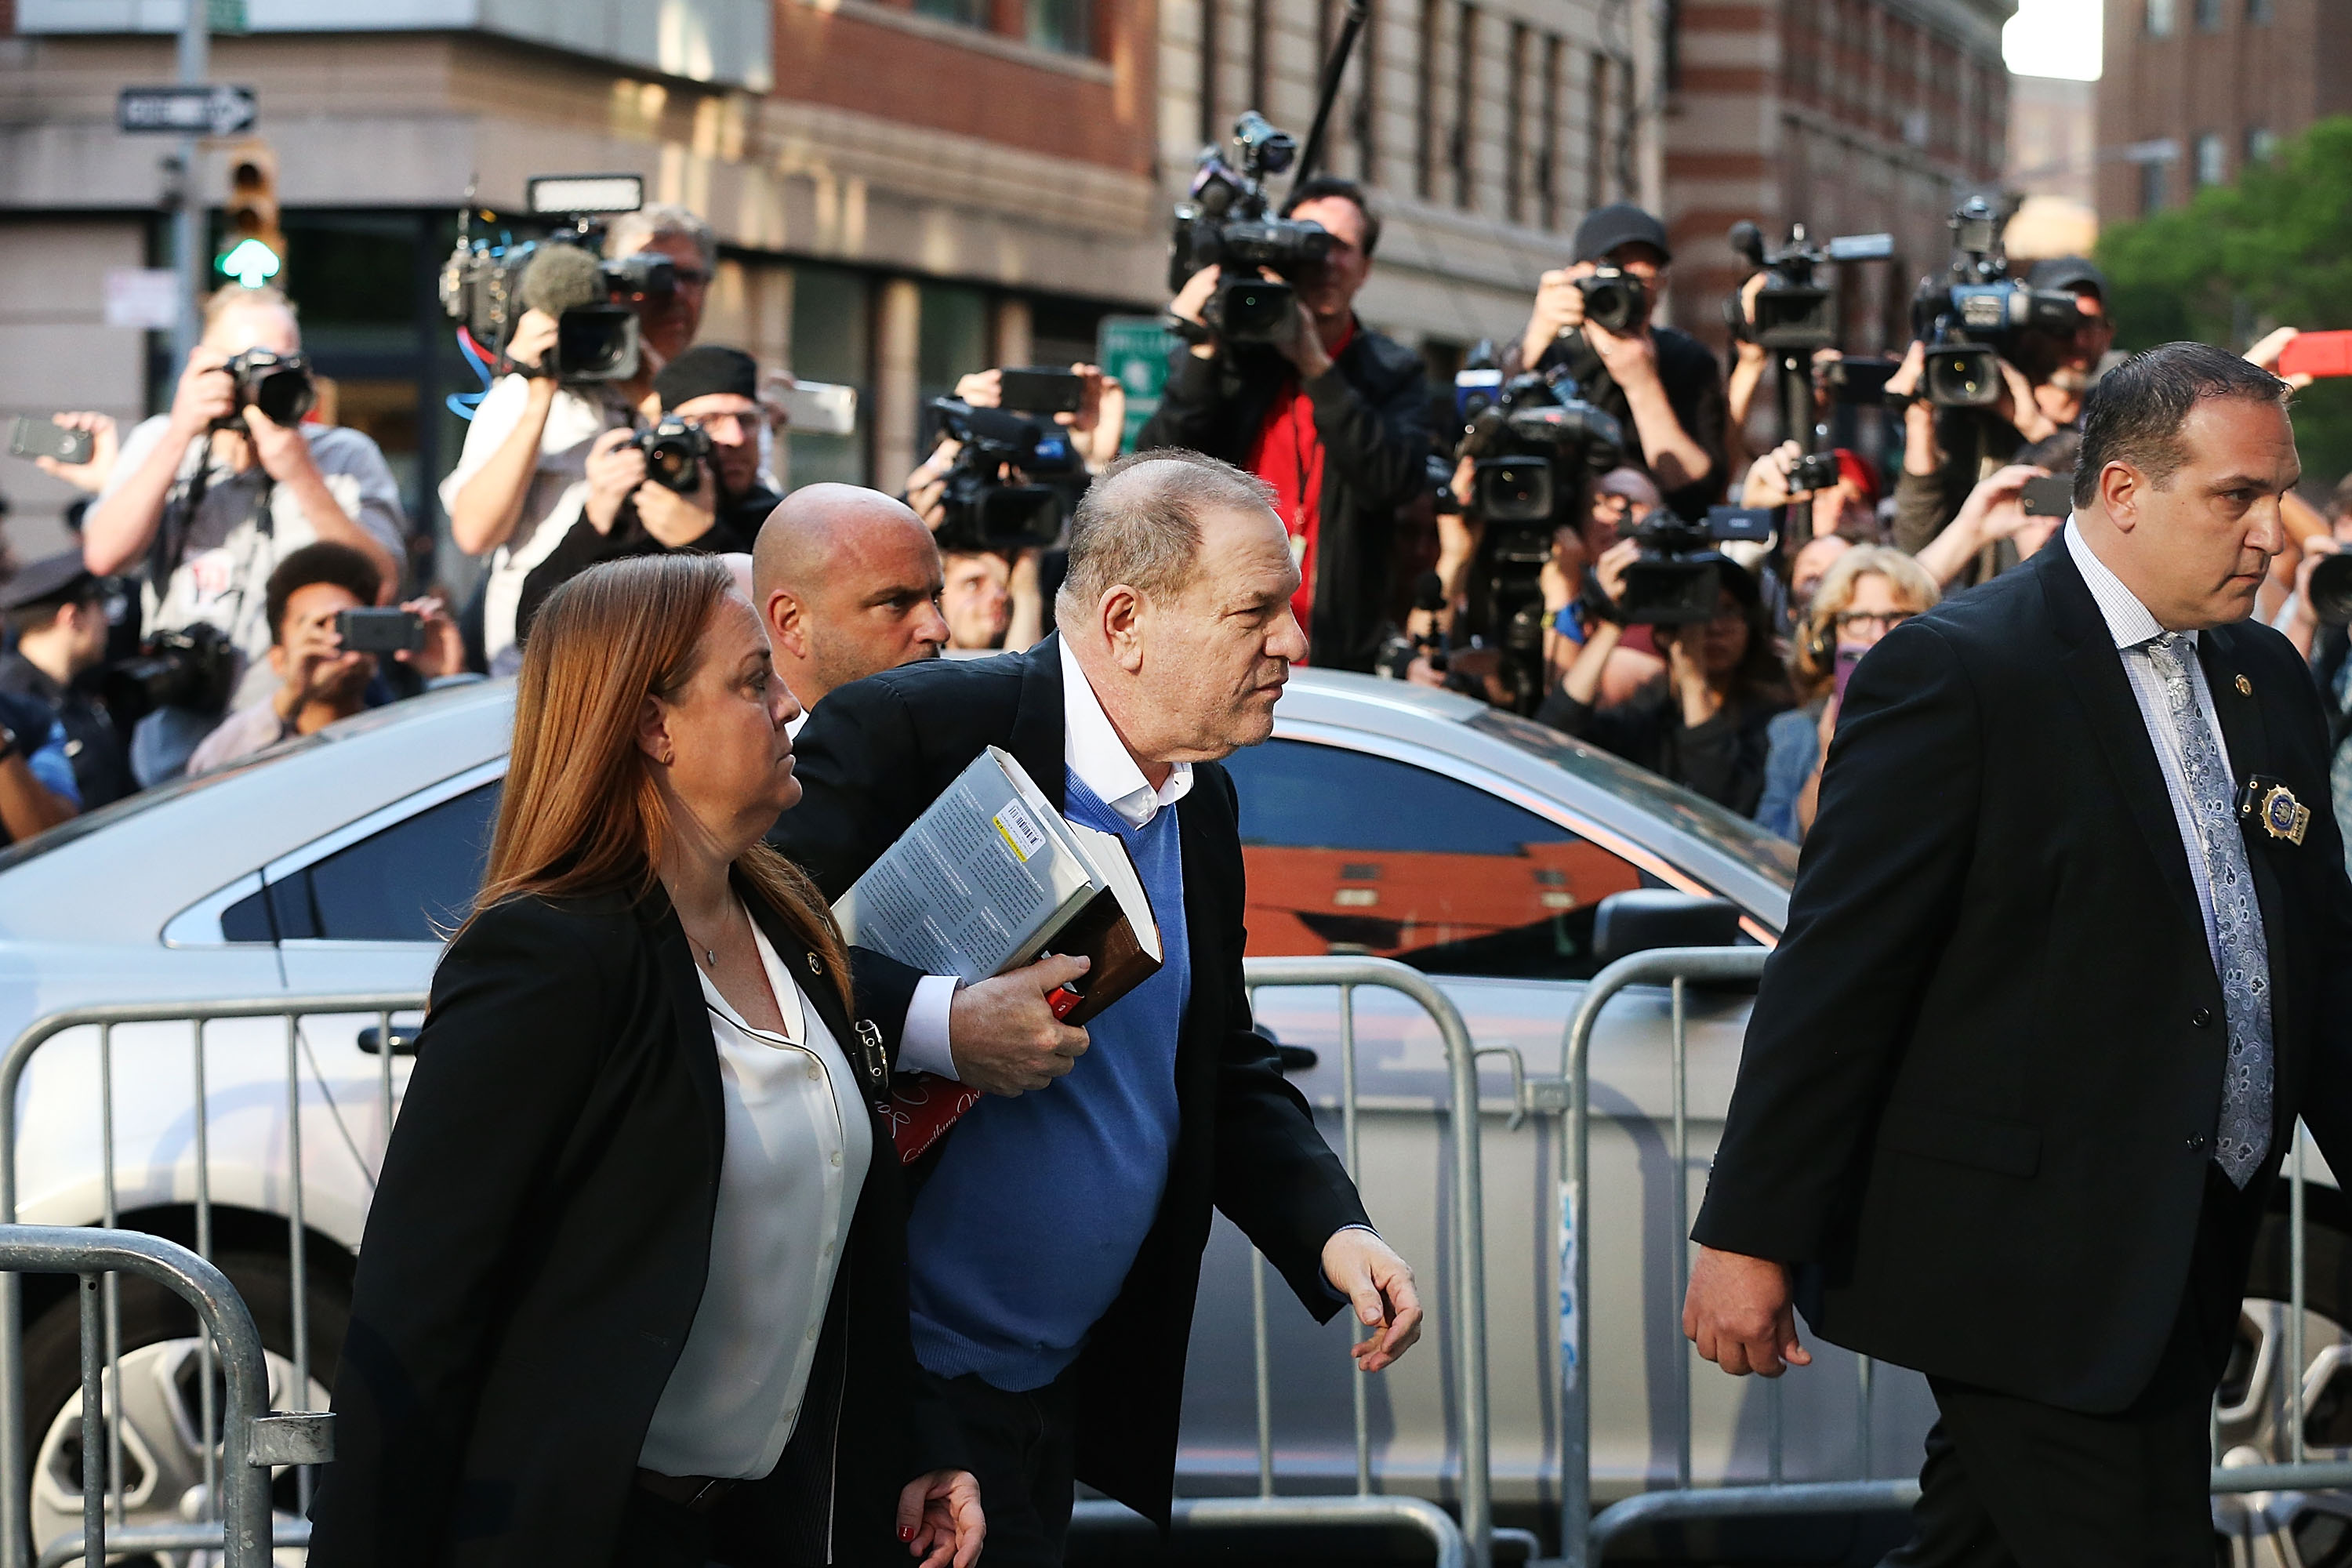 NEW YORK, NY - MAY 25: Harvey Weinstein arrives at the New York Police Department's First Precinct to turn himself in after being served with criminal charges by the Manhattan District Attorney's office on May 25, 2018 in New York City. The former movie producer faces charges in connection with accusations made by aspiring actress Lucia Evans who has said that Weinstein forced her to perform oral sex on him in his Manhattan office in 2004. Weinstein (66) has been accused by dozens of other women of forcing them into sexual acts using both pressure and threats. The revelations of his behavior helped to spawn the global #MeToo movement. Weinstein is carrying a biography of Elia Kazan. (Photo by Spencer Platt/Getty Images)